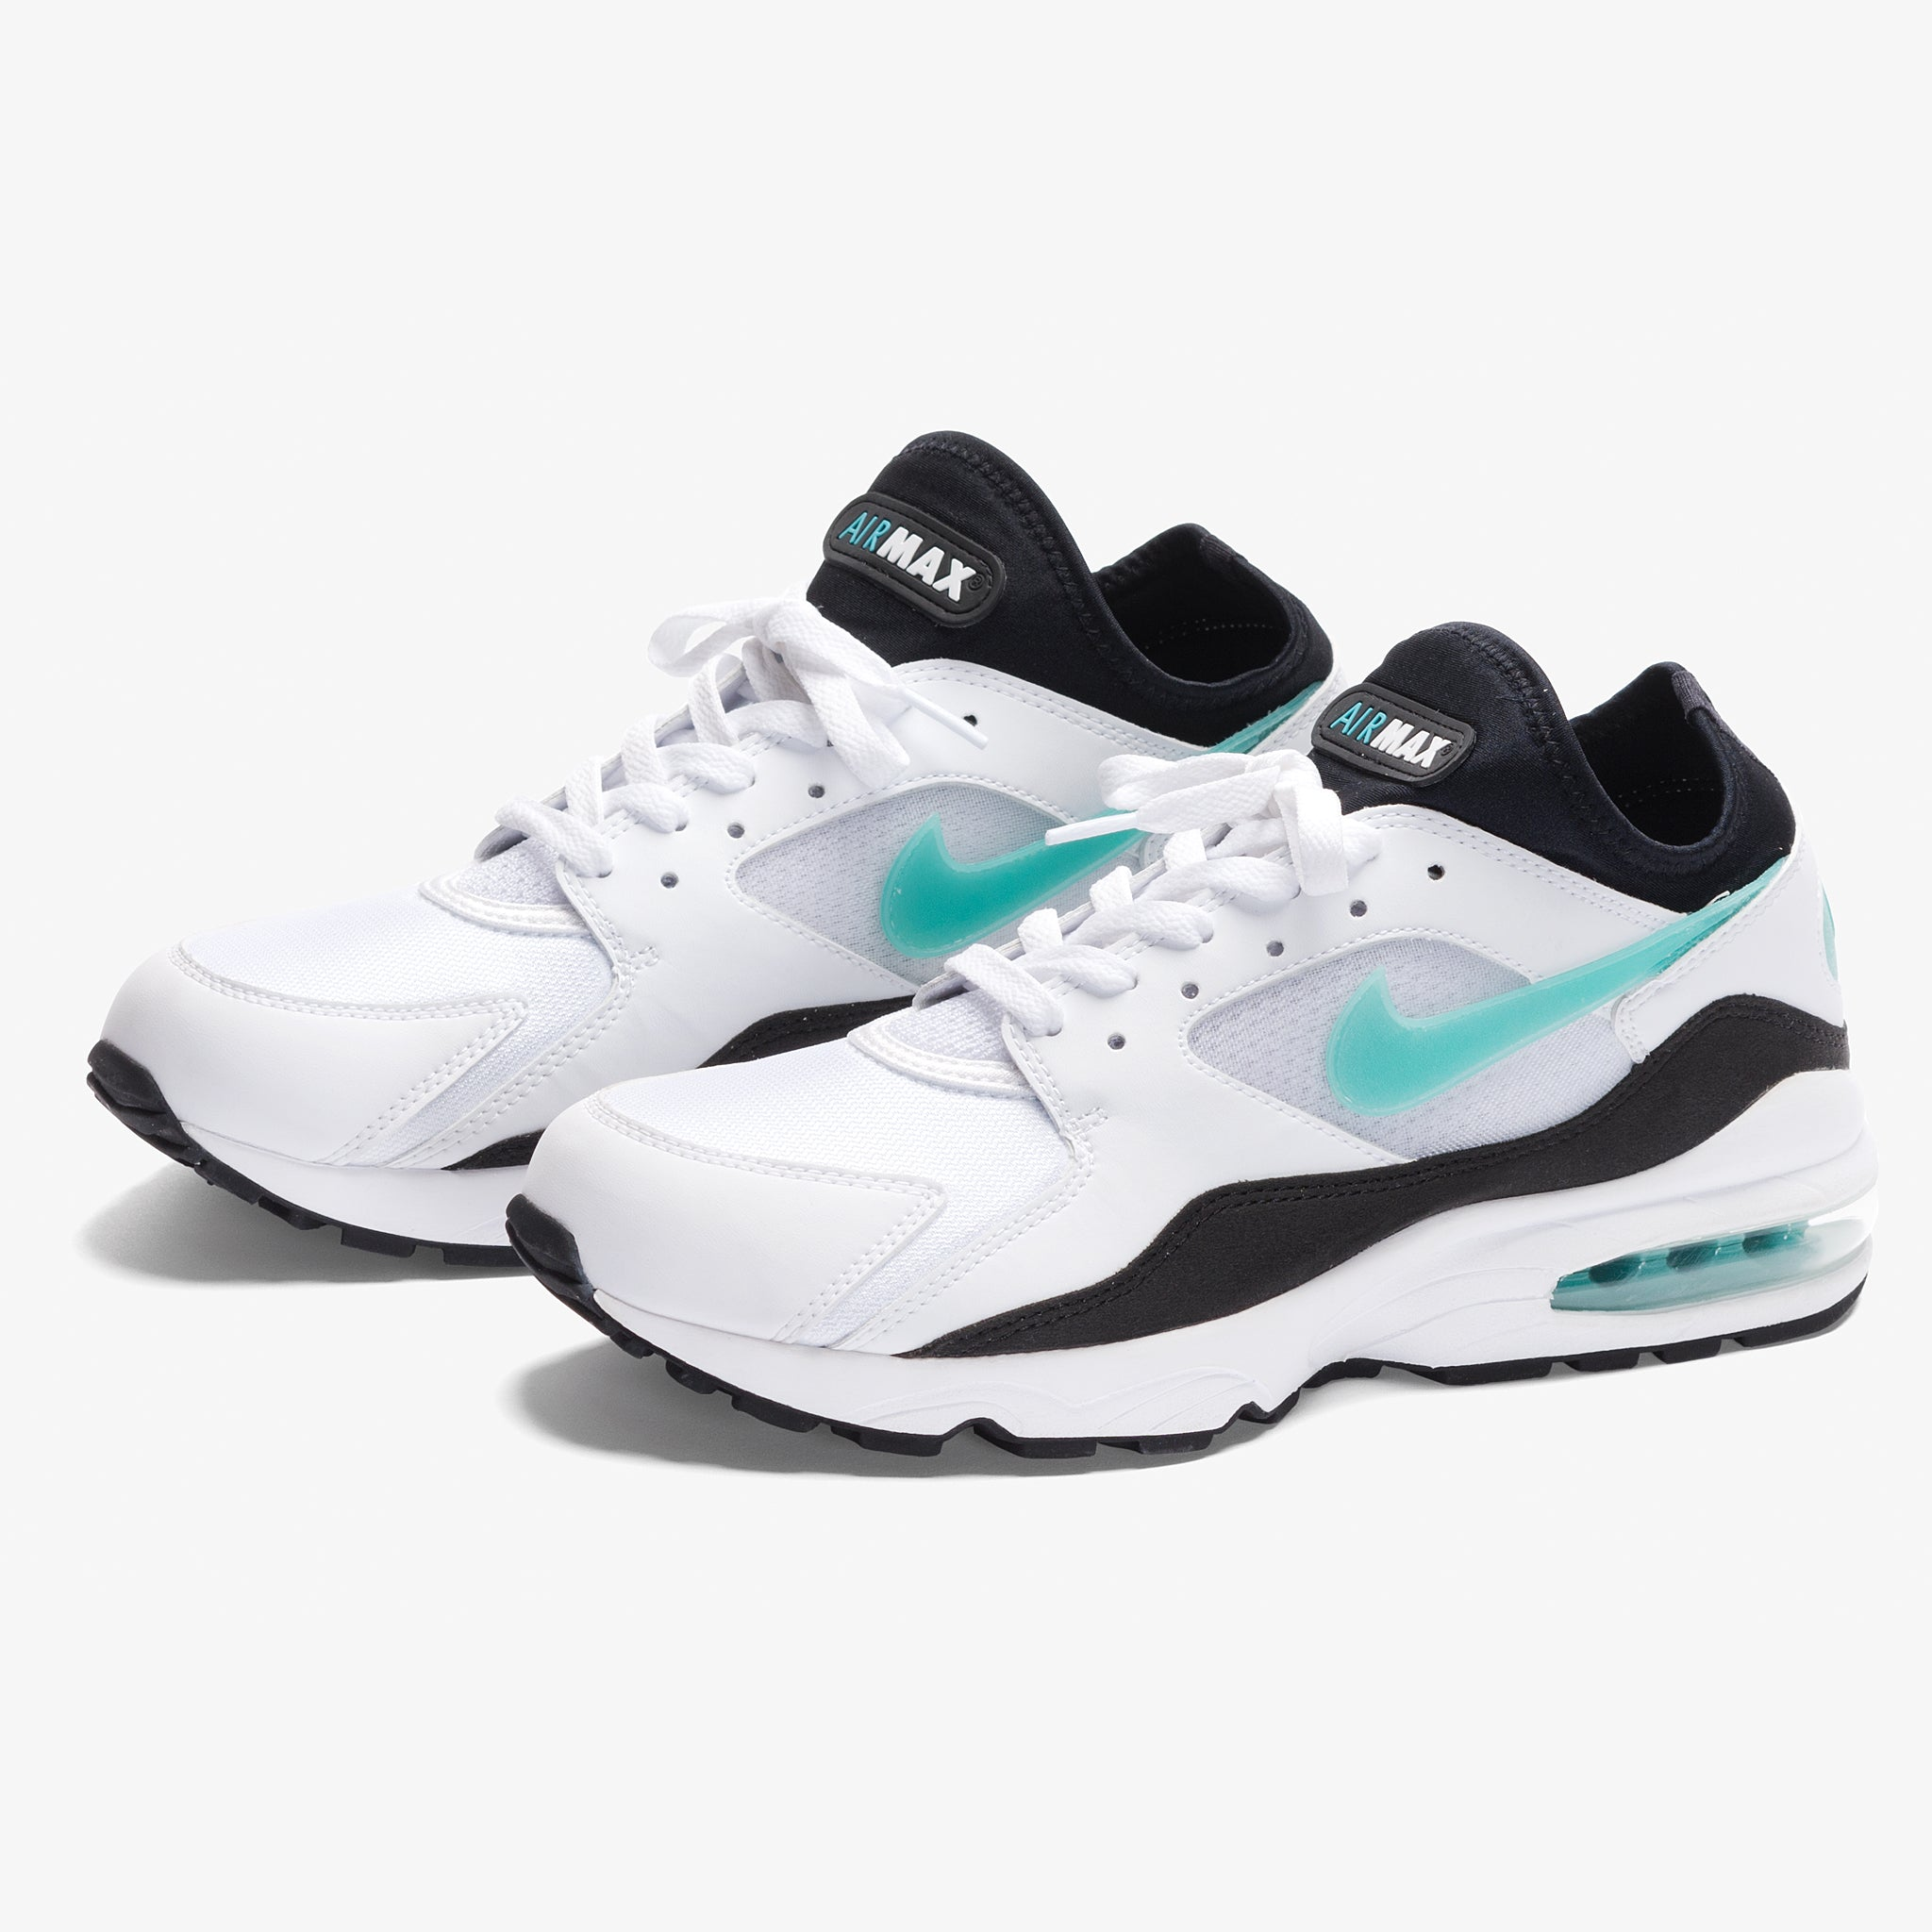 Women s Air Max 93 (Aquamarine) – Bows and Arrows 0c632589f2